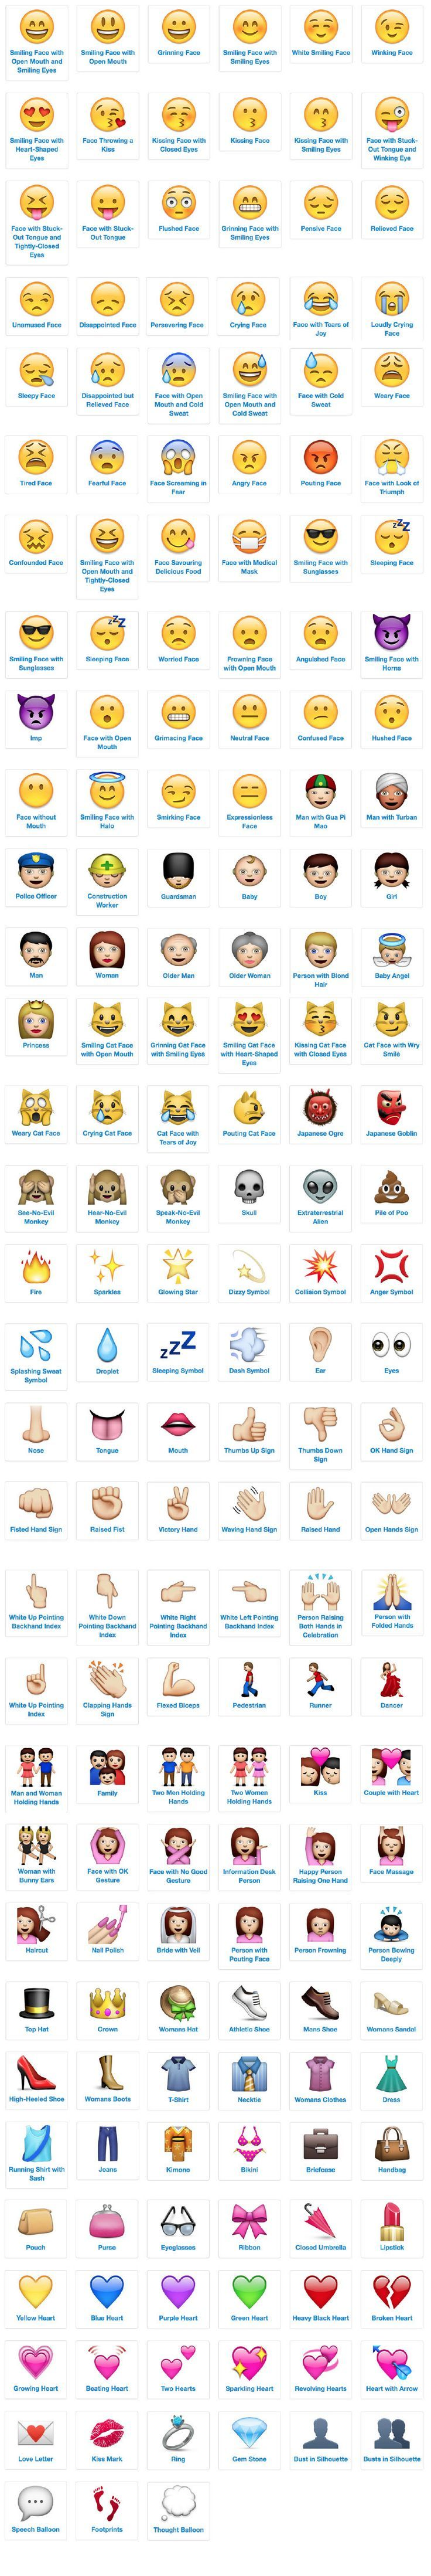 Emoji People Icons List With Meanings And Definitions Emoji People Emoji Emoji Love